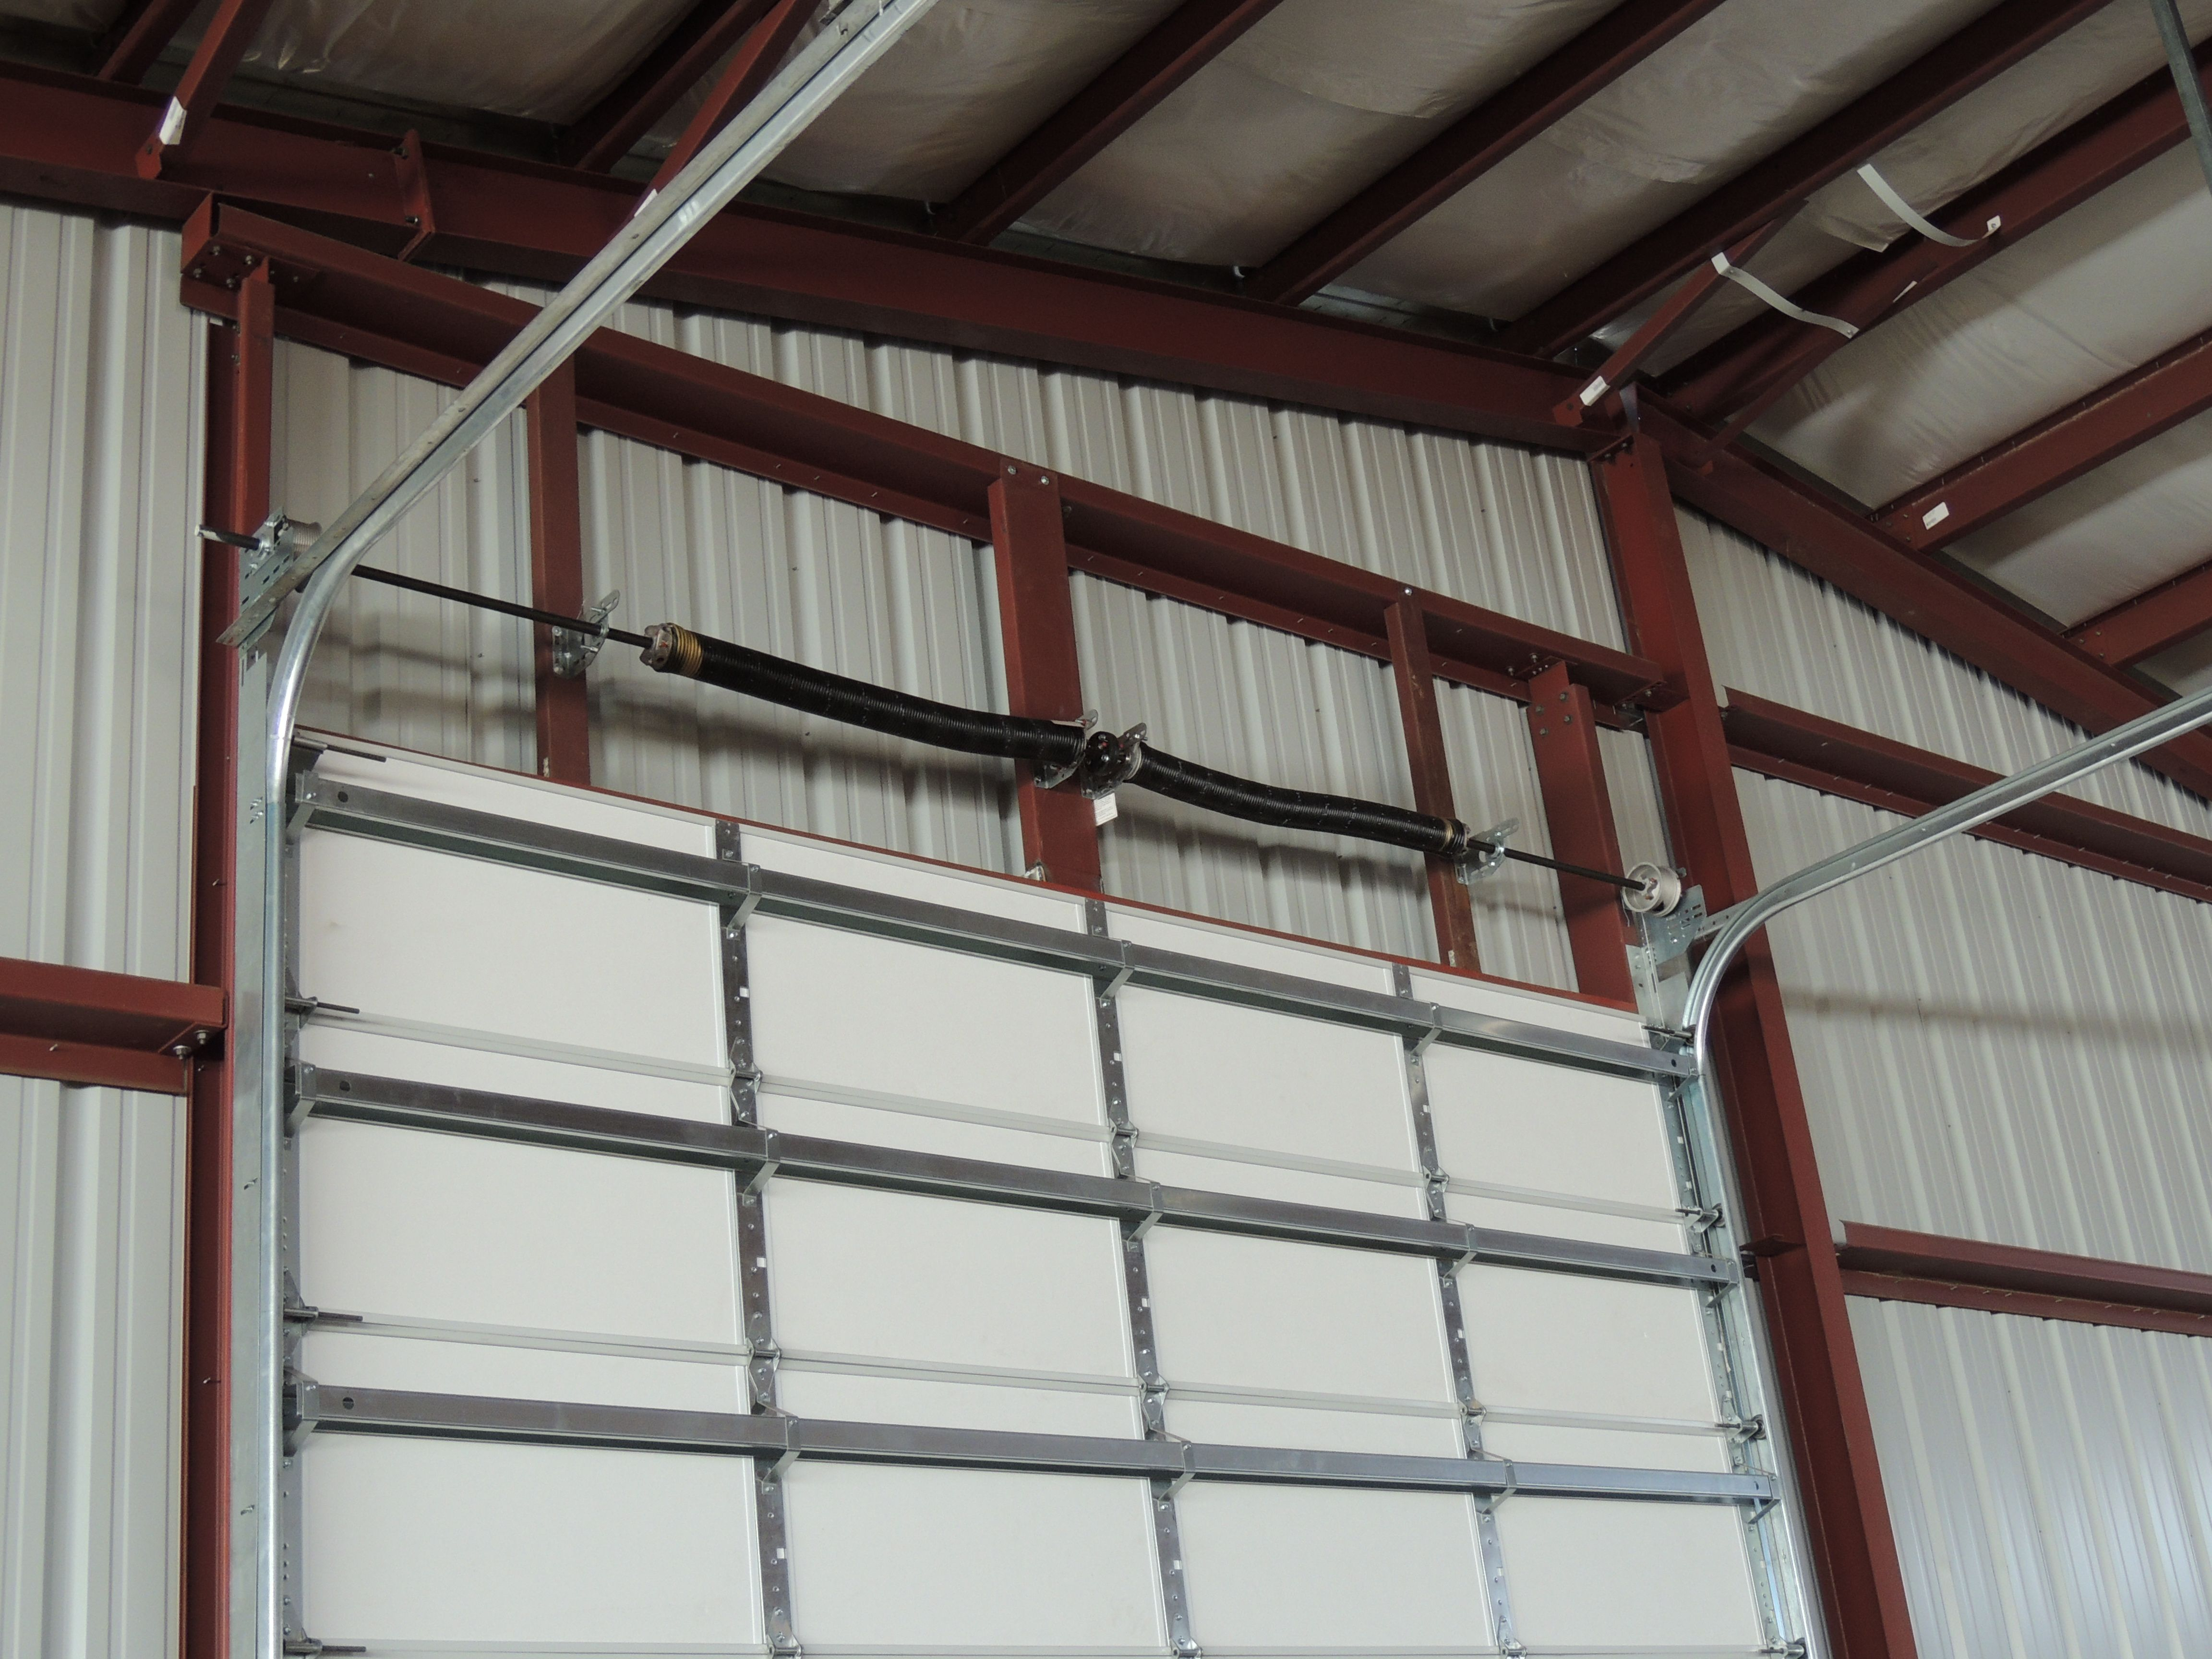 Overhead Garage Door Lift Options Call Metal Building Outlet At 1 800 486 8415 To Learn More About Over Metal Buildings Metal Garage Doors Metal Shop Building